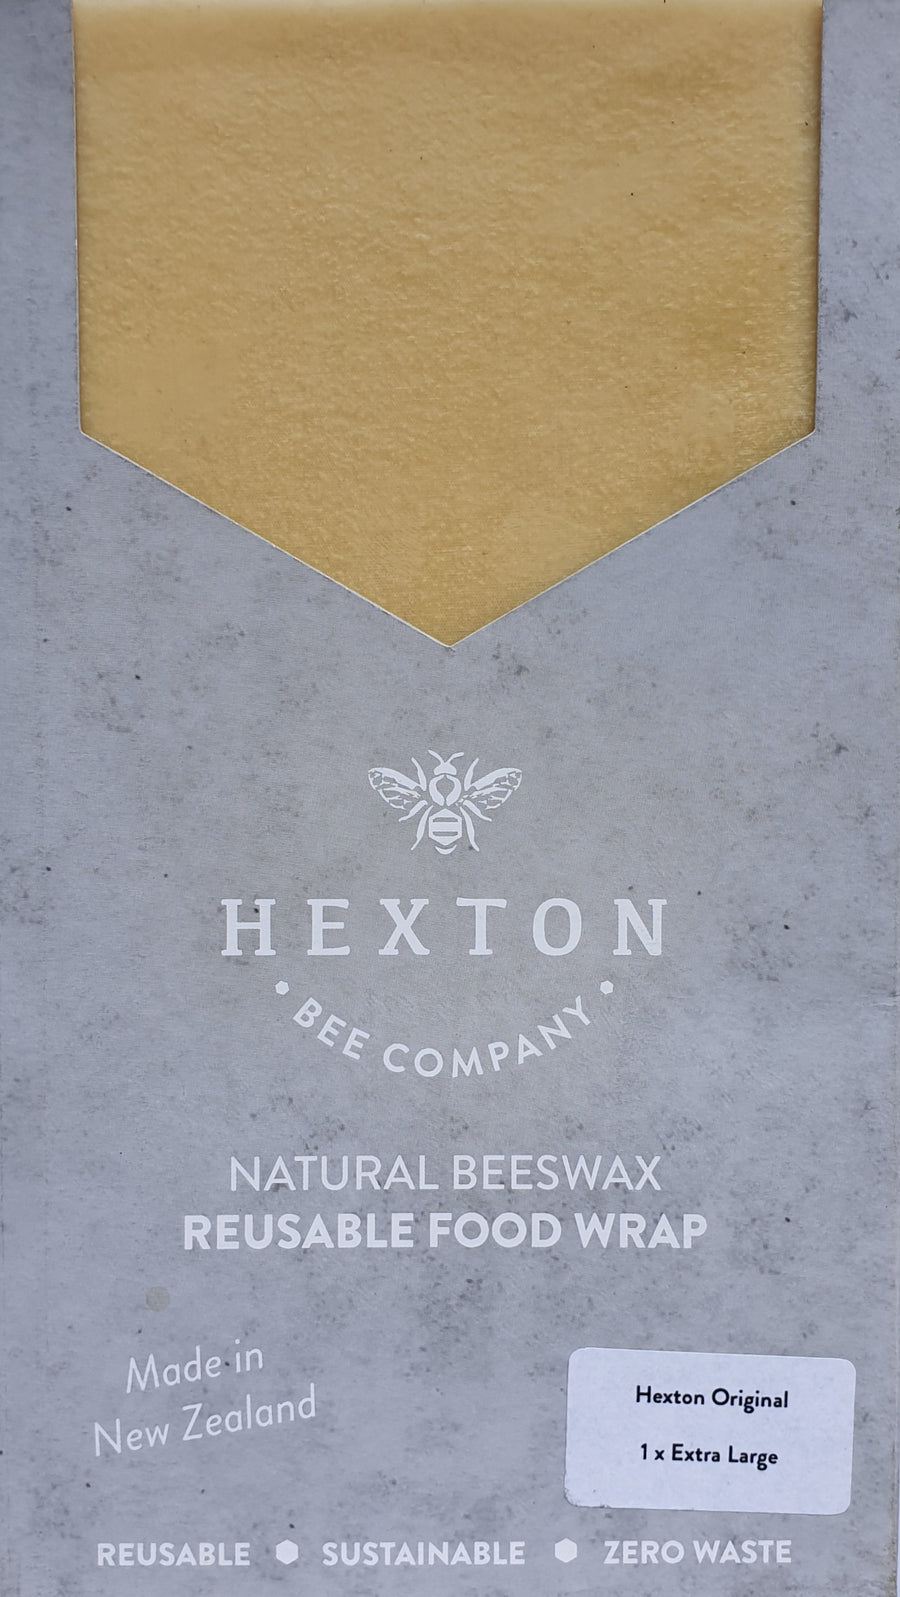 XL Beeswax Wrap - Hexton Original